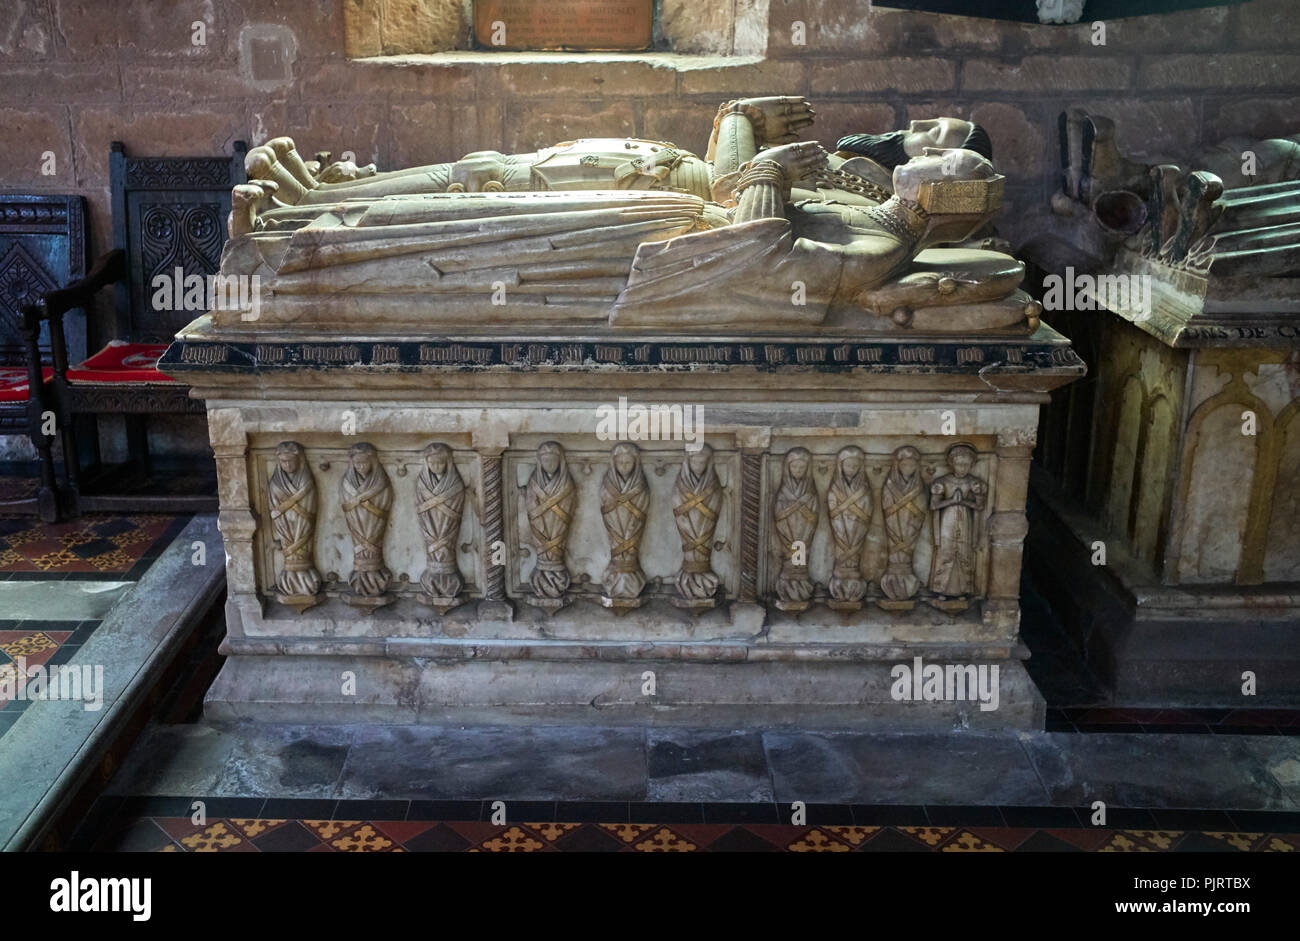 The tomb of Sir John Giffard who died in 1556 with his wives at St Mary and St Chad Church in Brewood, South Shropshire - Stock Image